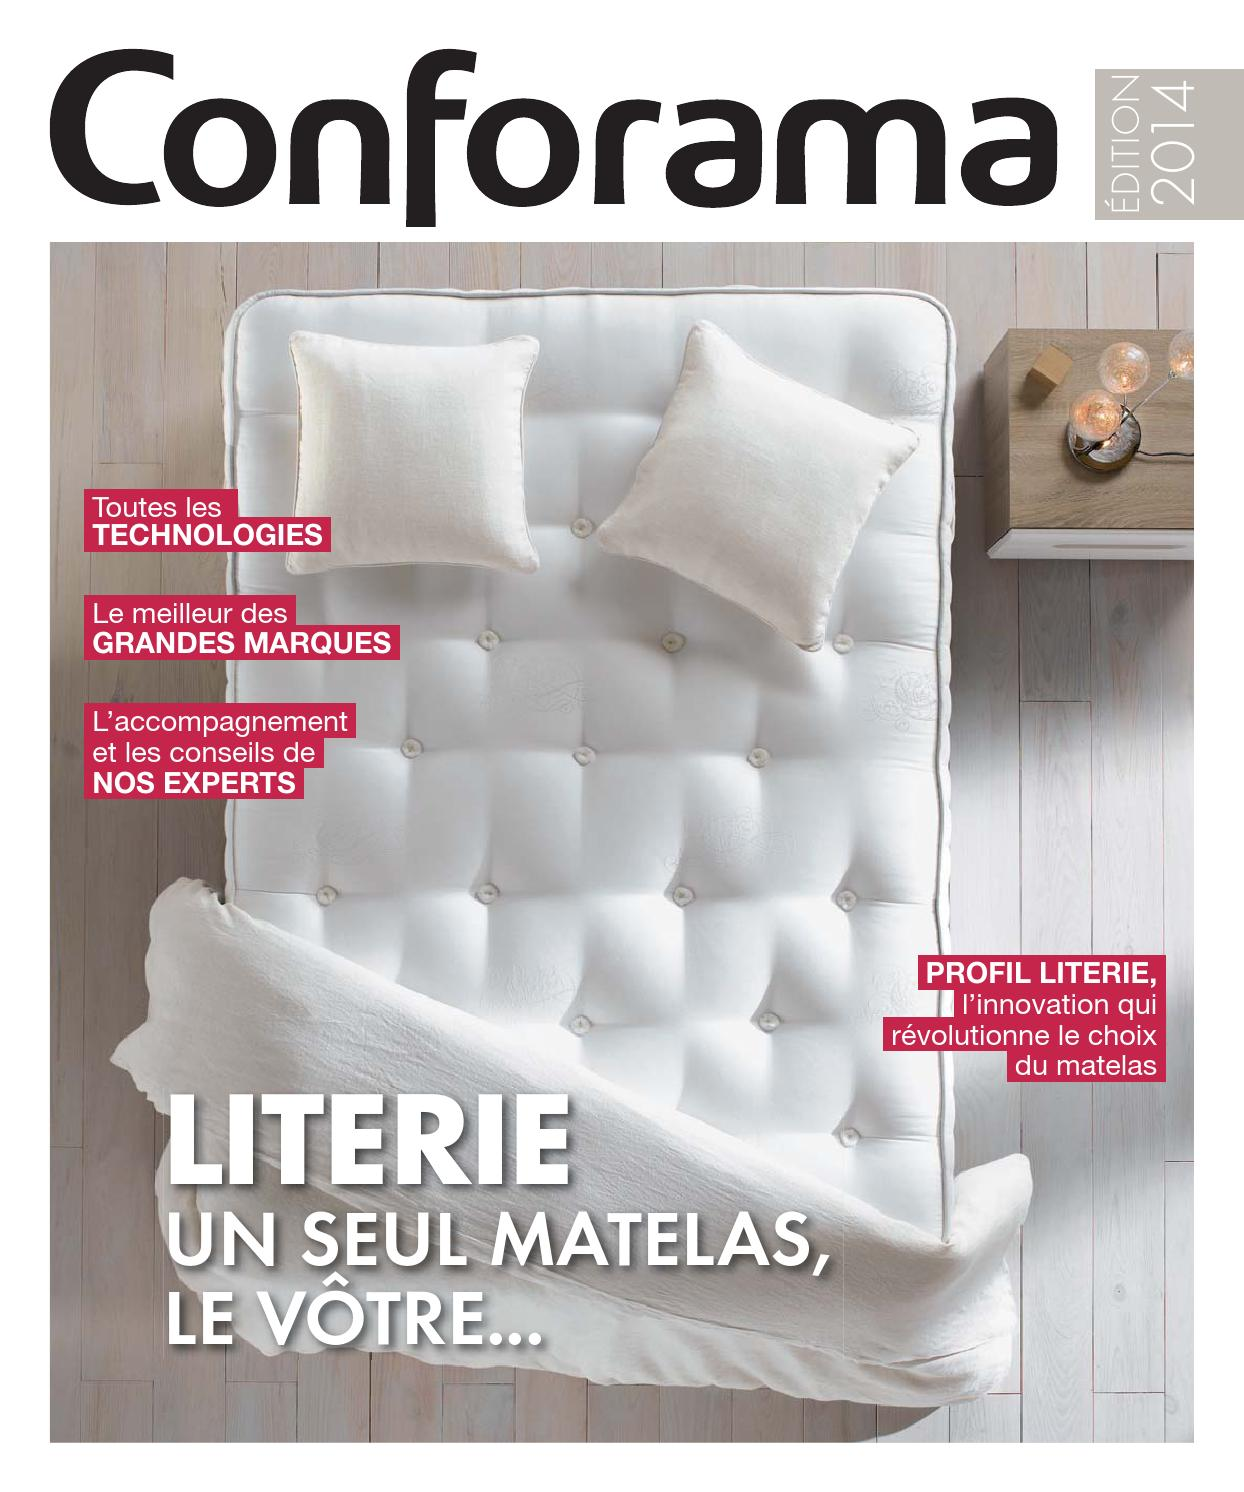 Matelas Ressorts Ensachés 160x200 Conforama Catalogue Conforama Guide Literie 2014 By Joe Monroe Issuu